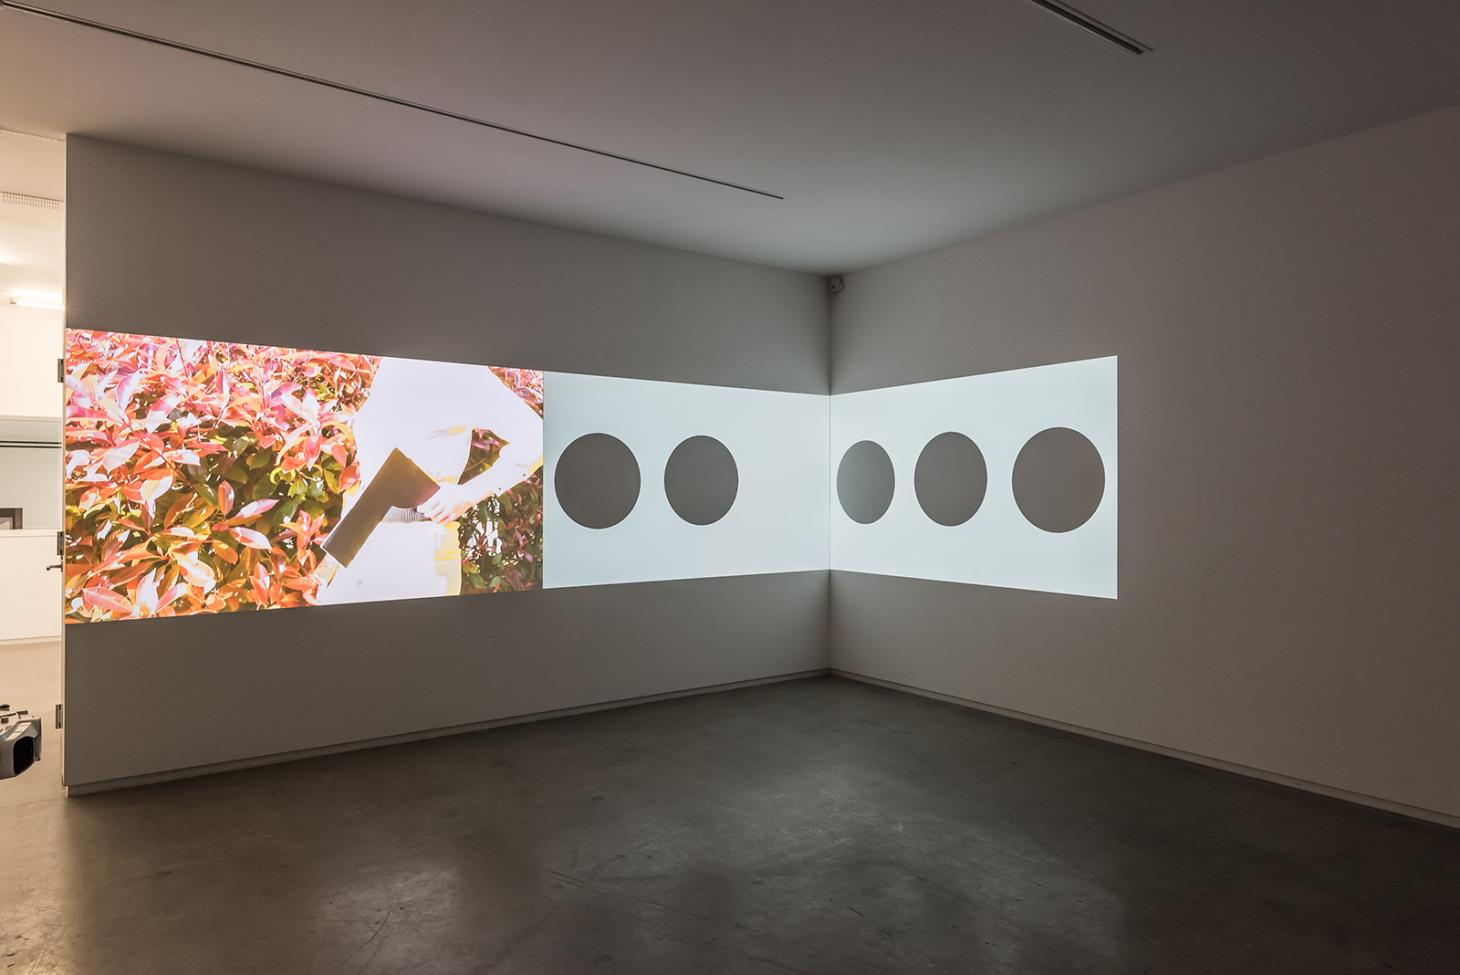 Installation view of 'Hilary Lloyd' at Blaffer Art Museum, Texas, 2016